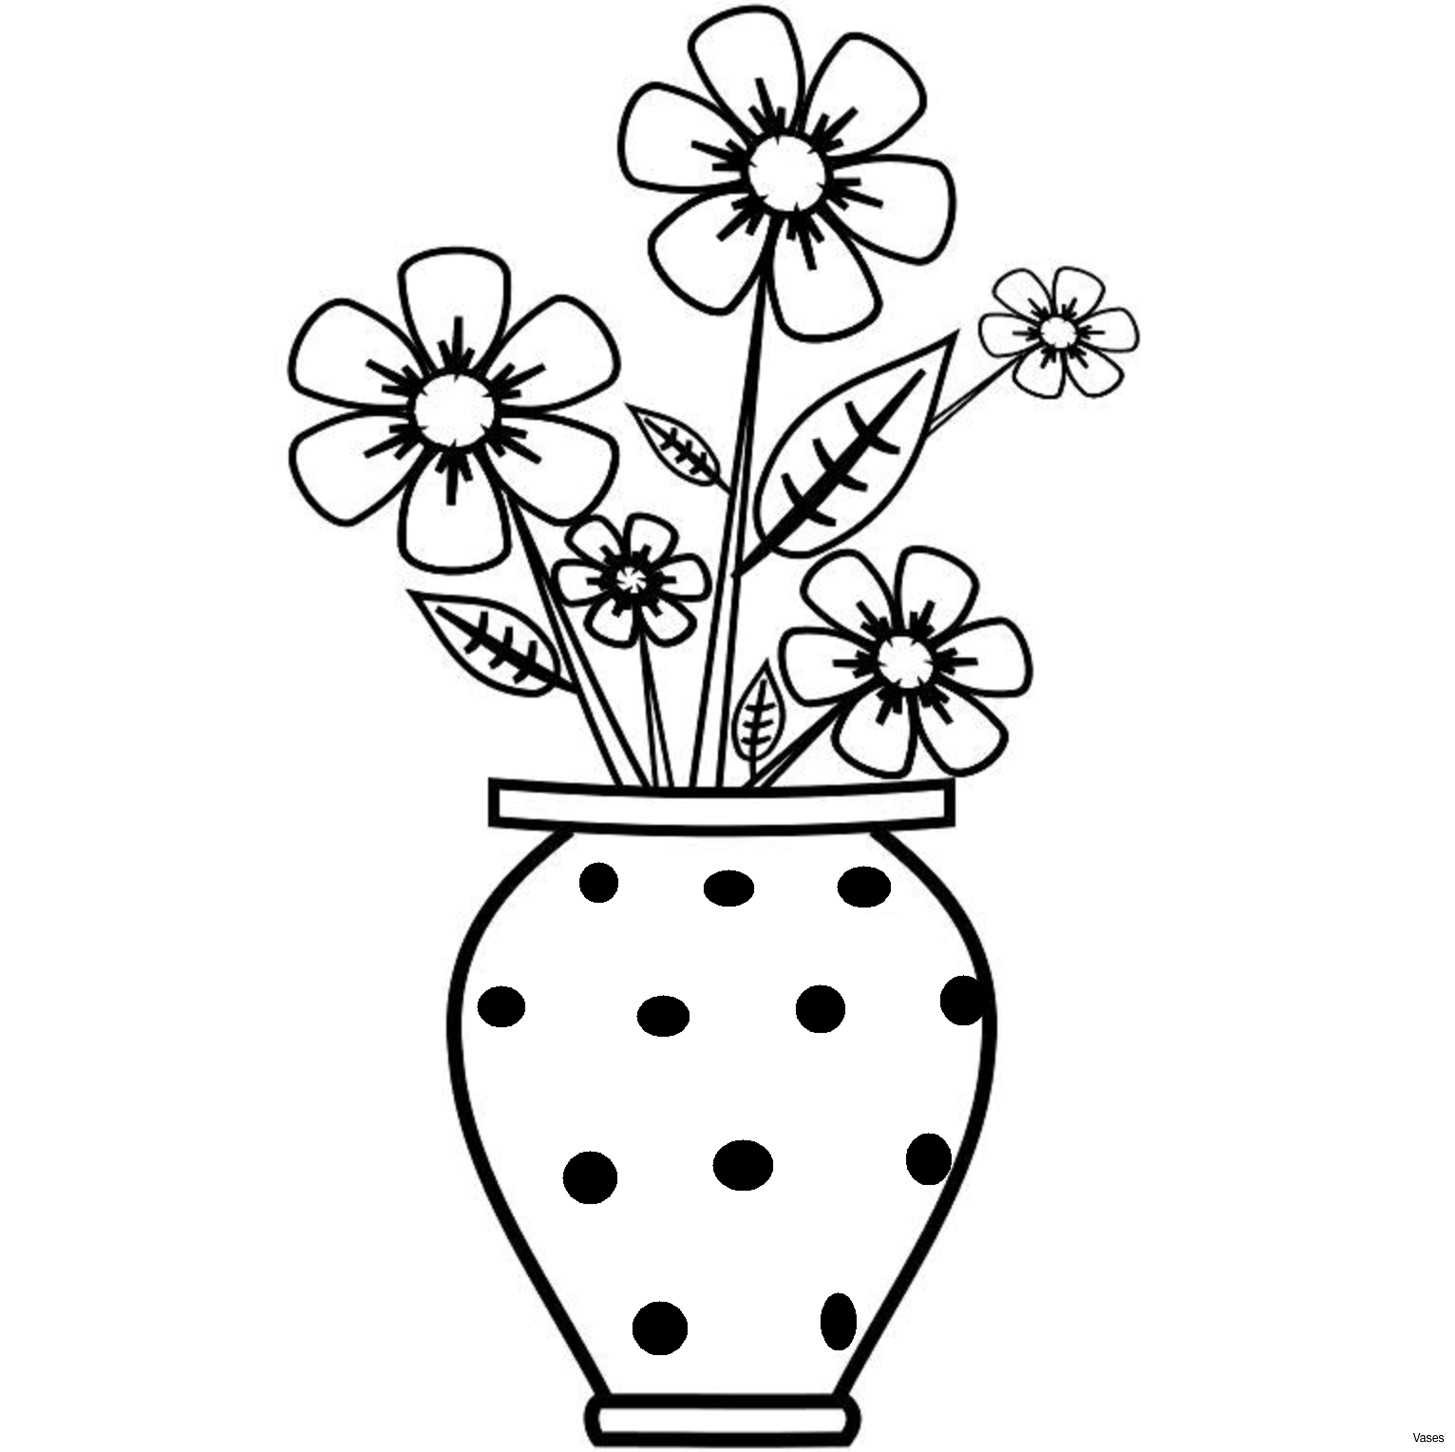 White Vase with Holes Of Haunted Tree Clipart Best Of Will Clipart Colored Flower Vase Clip for Haunted Tree Clipart Best Of Will Clipart Colored Flower Vase Clip Arth Vases Art Infoi 0d